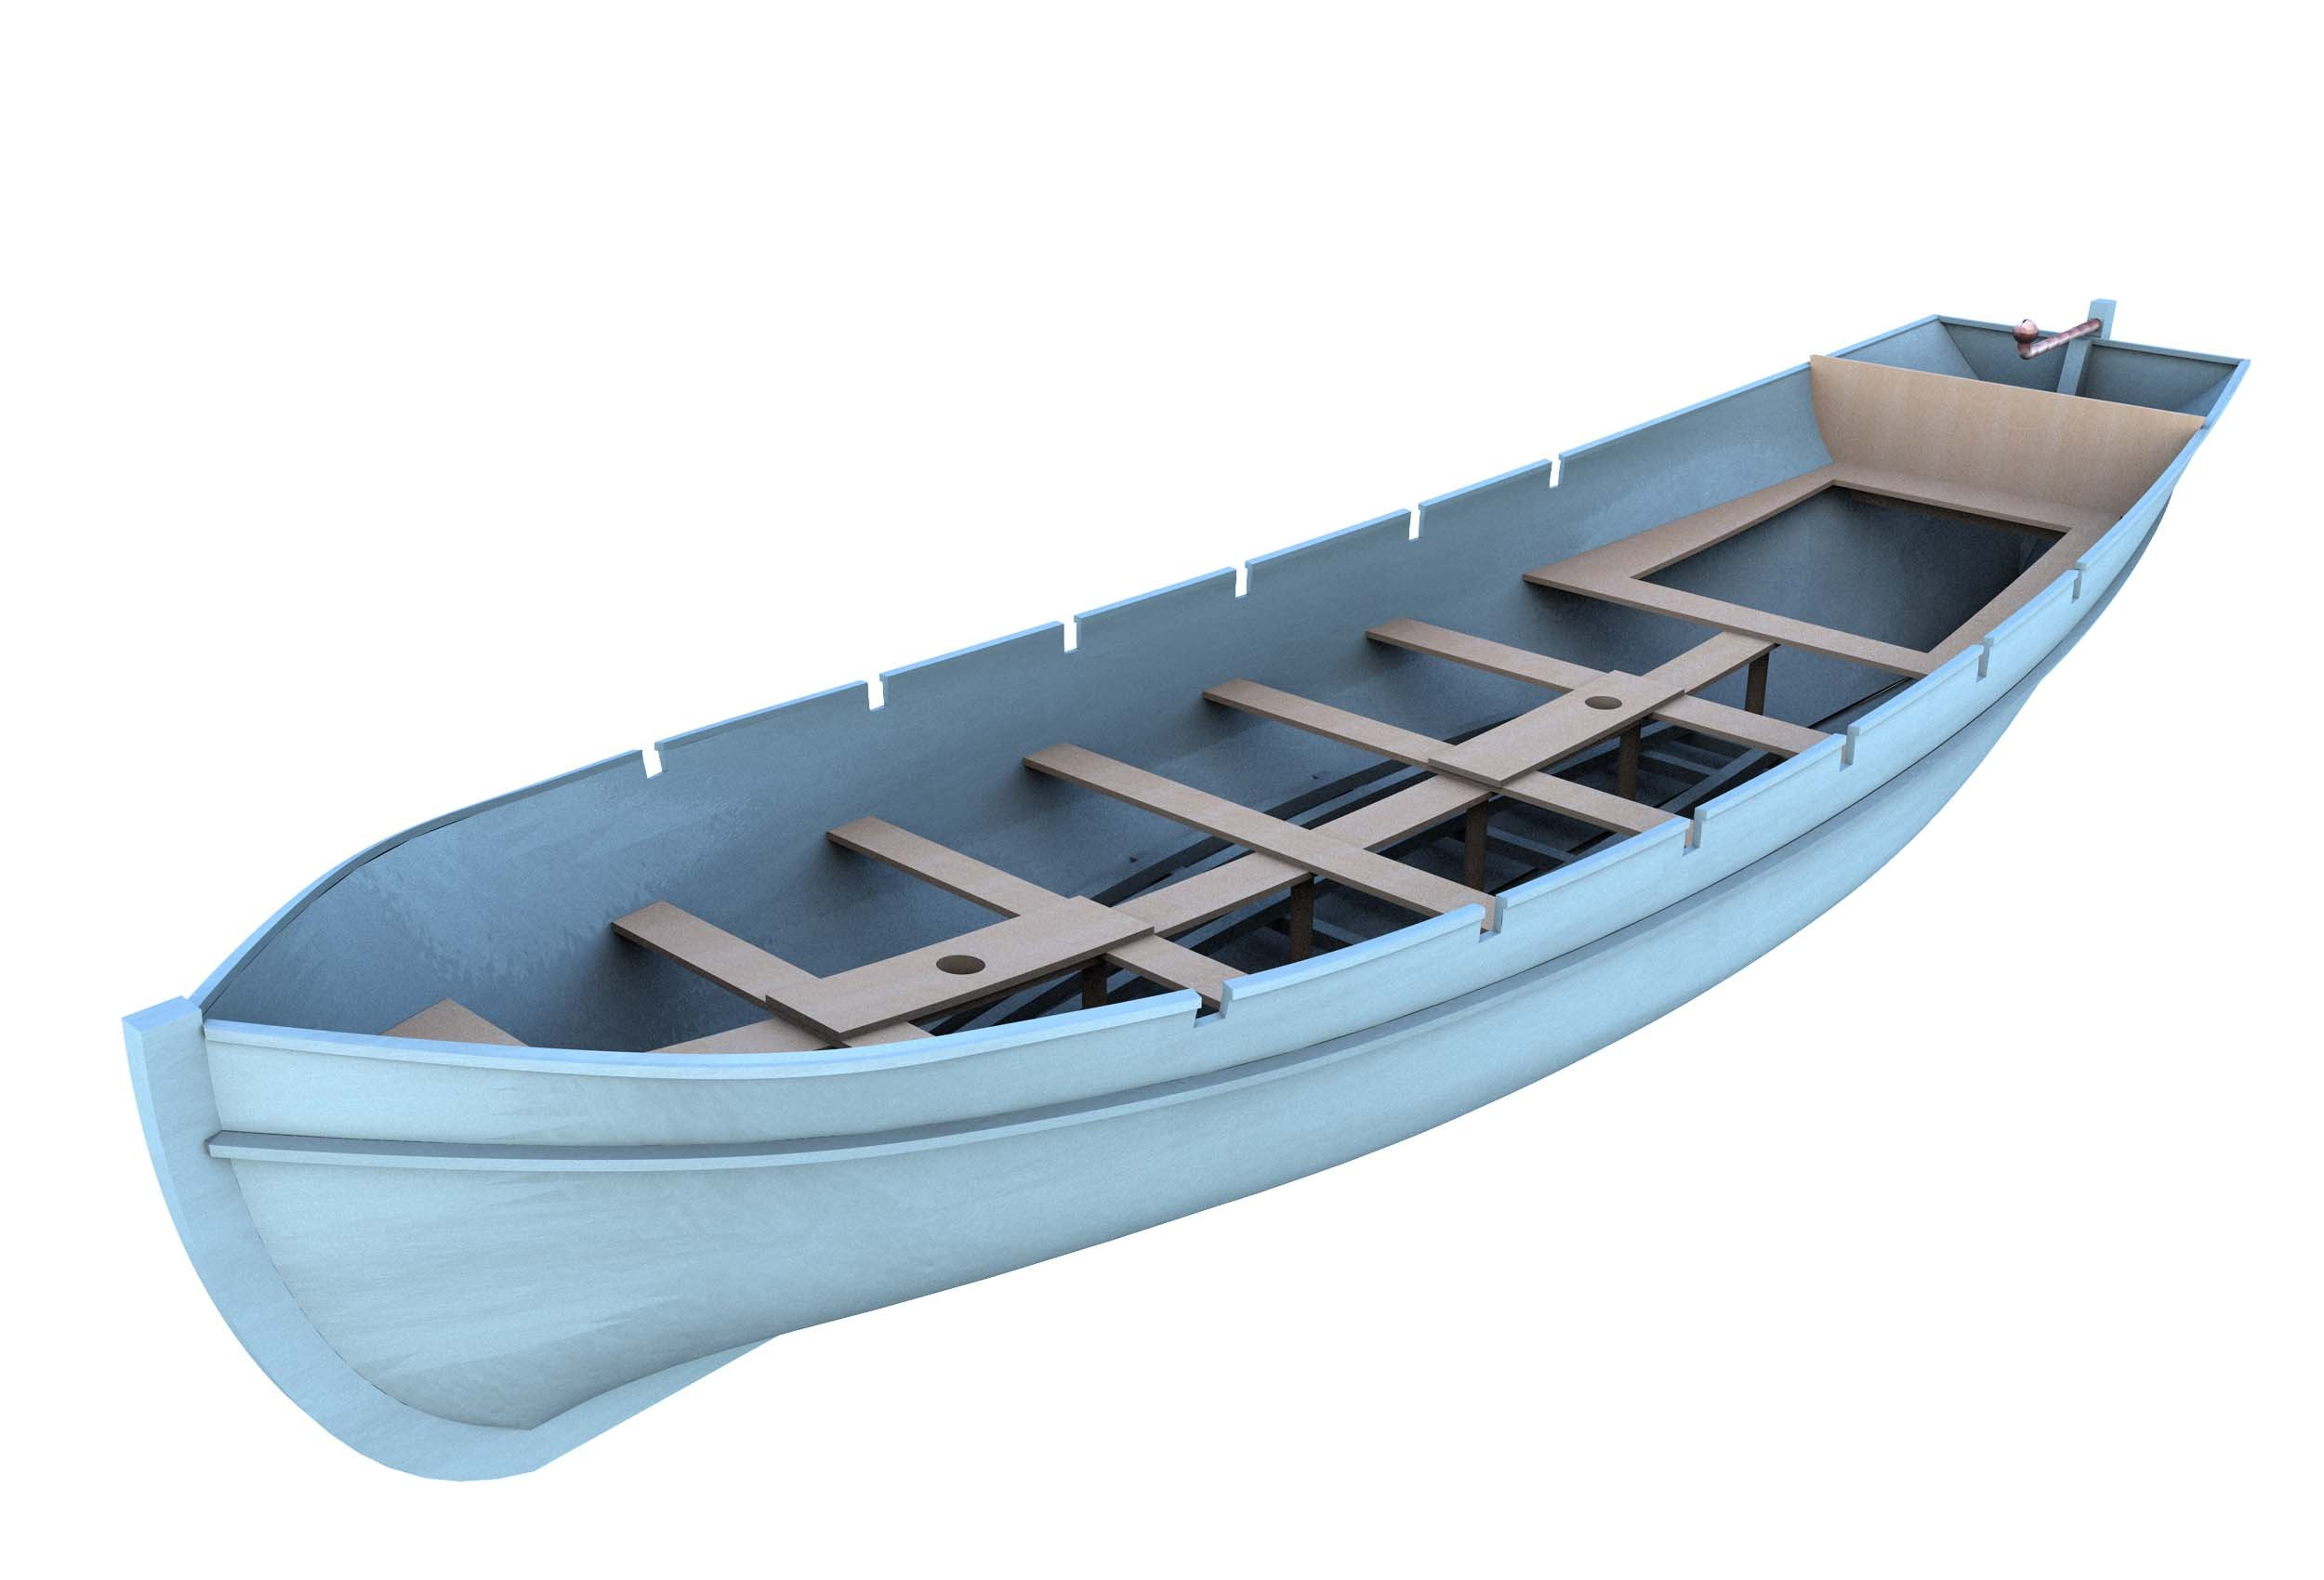 https://0901.nccdn.net/4_2/000/000/05c/240/CK97-Individual-Small-Boat-Segelkutter-Port-Bow.jpg